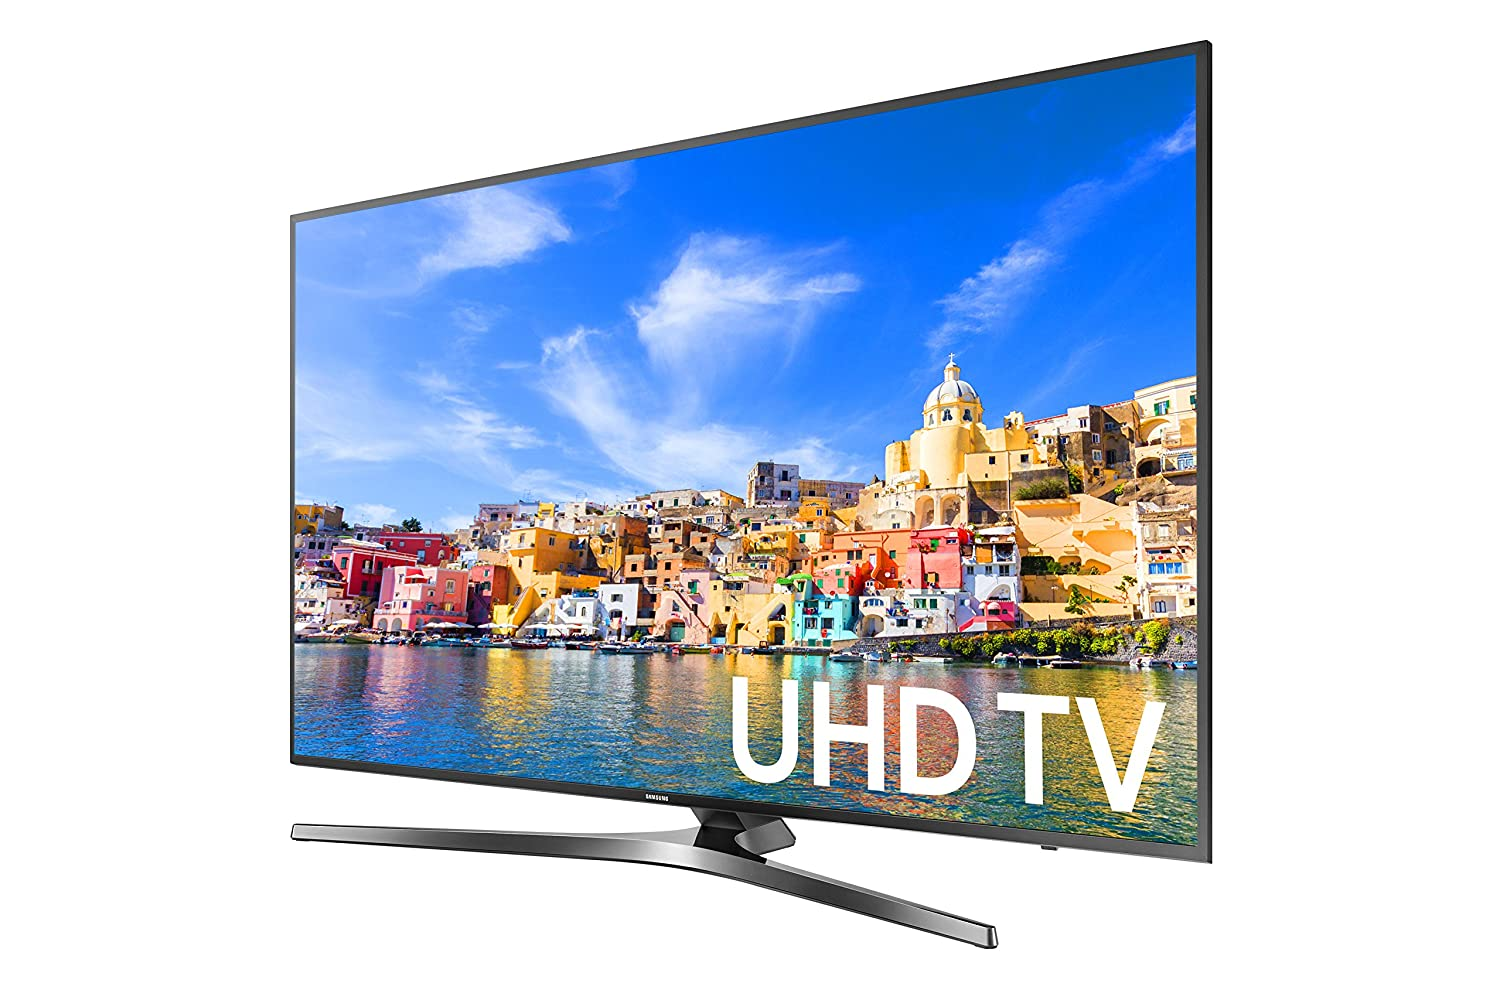 Driver for Samsung UN40KU7000F LED TV